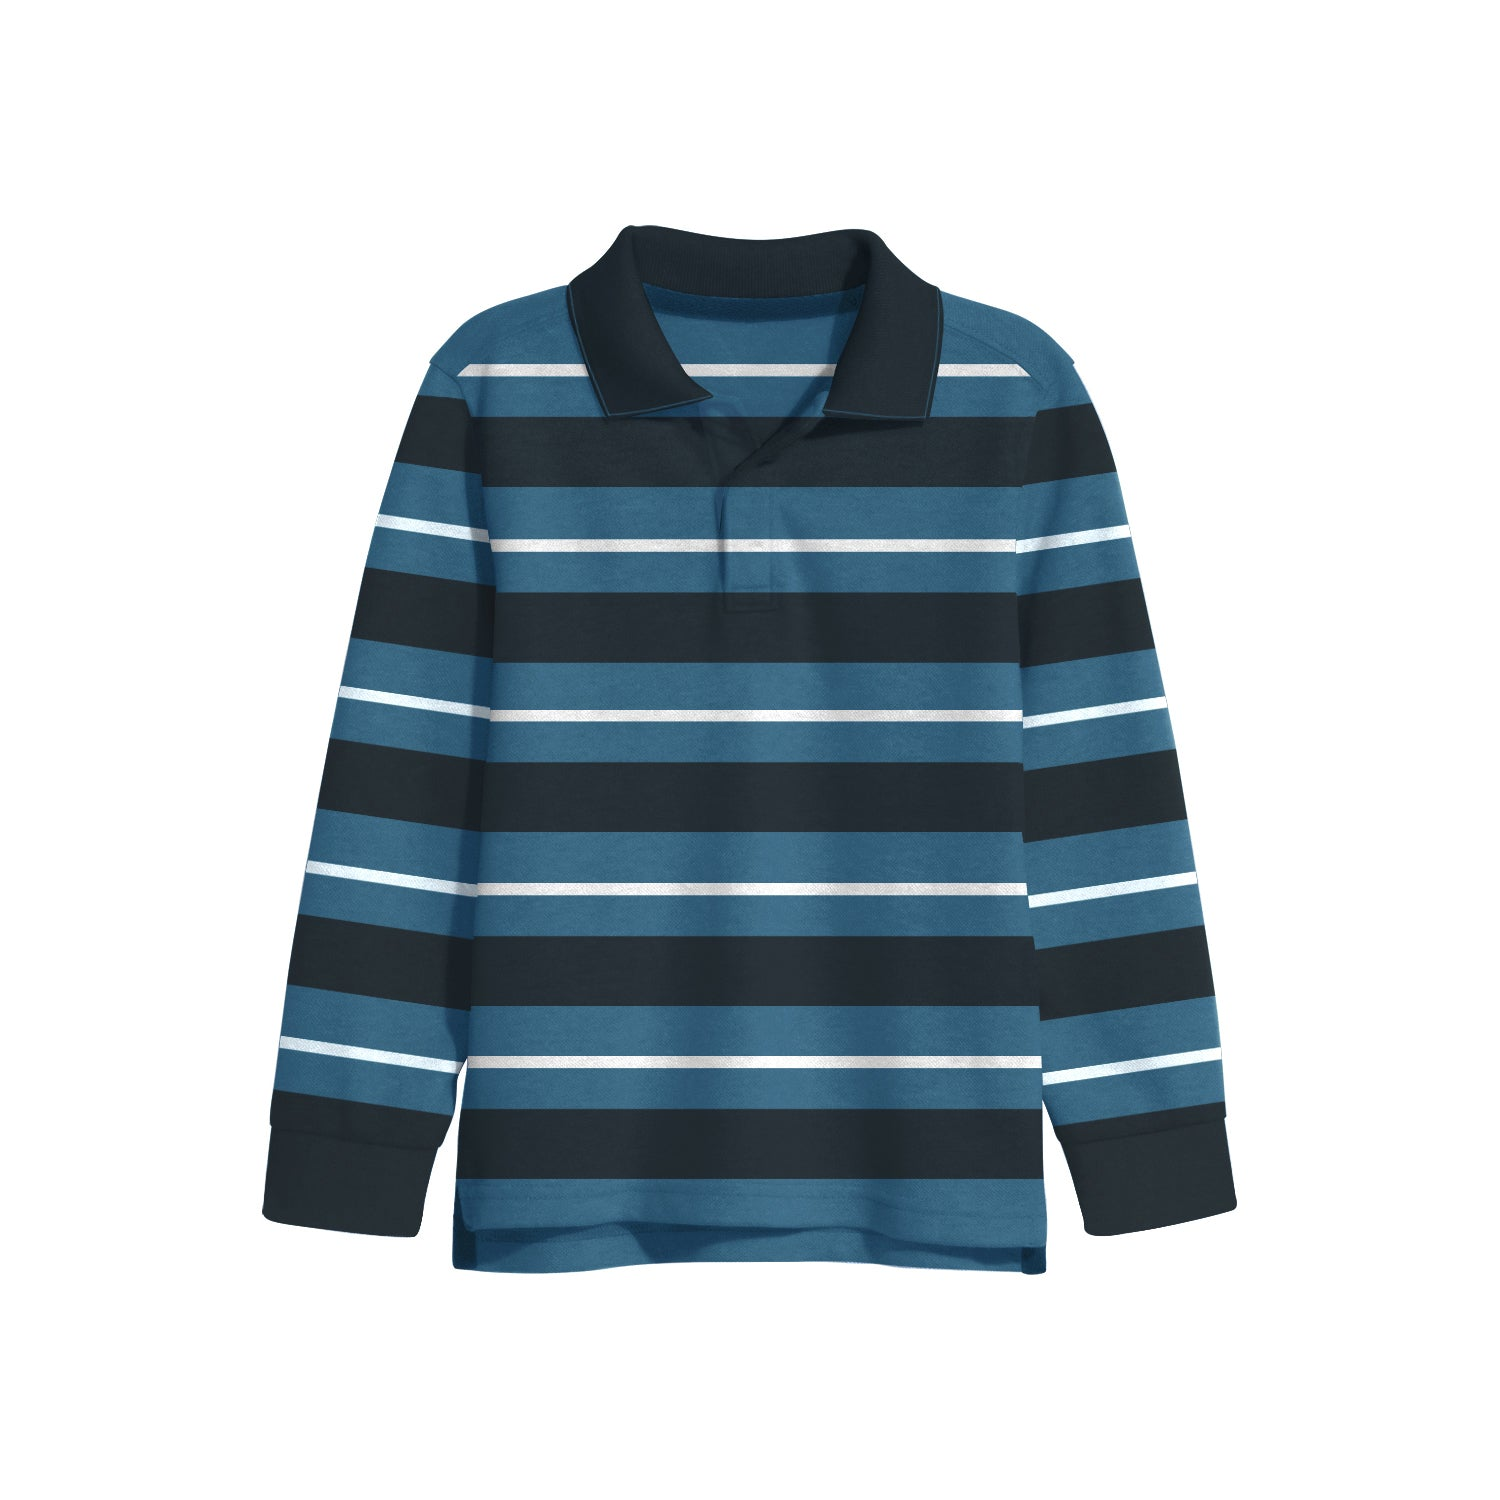 NEXT Single Jersey Polo Shirt For Kids-Striped-BE9346